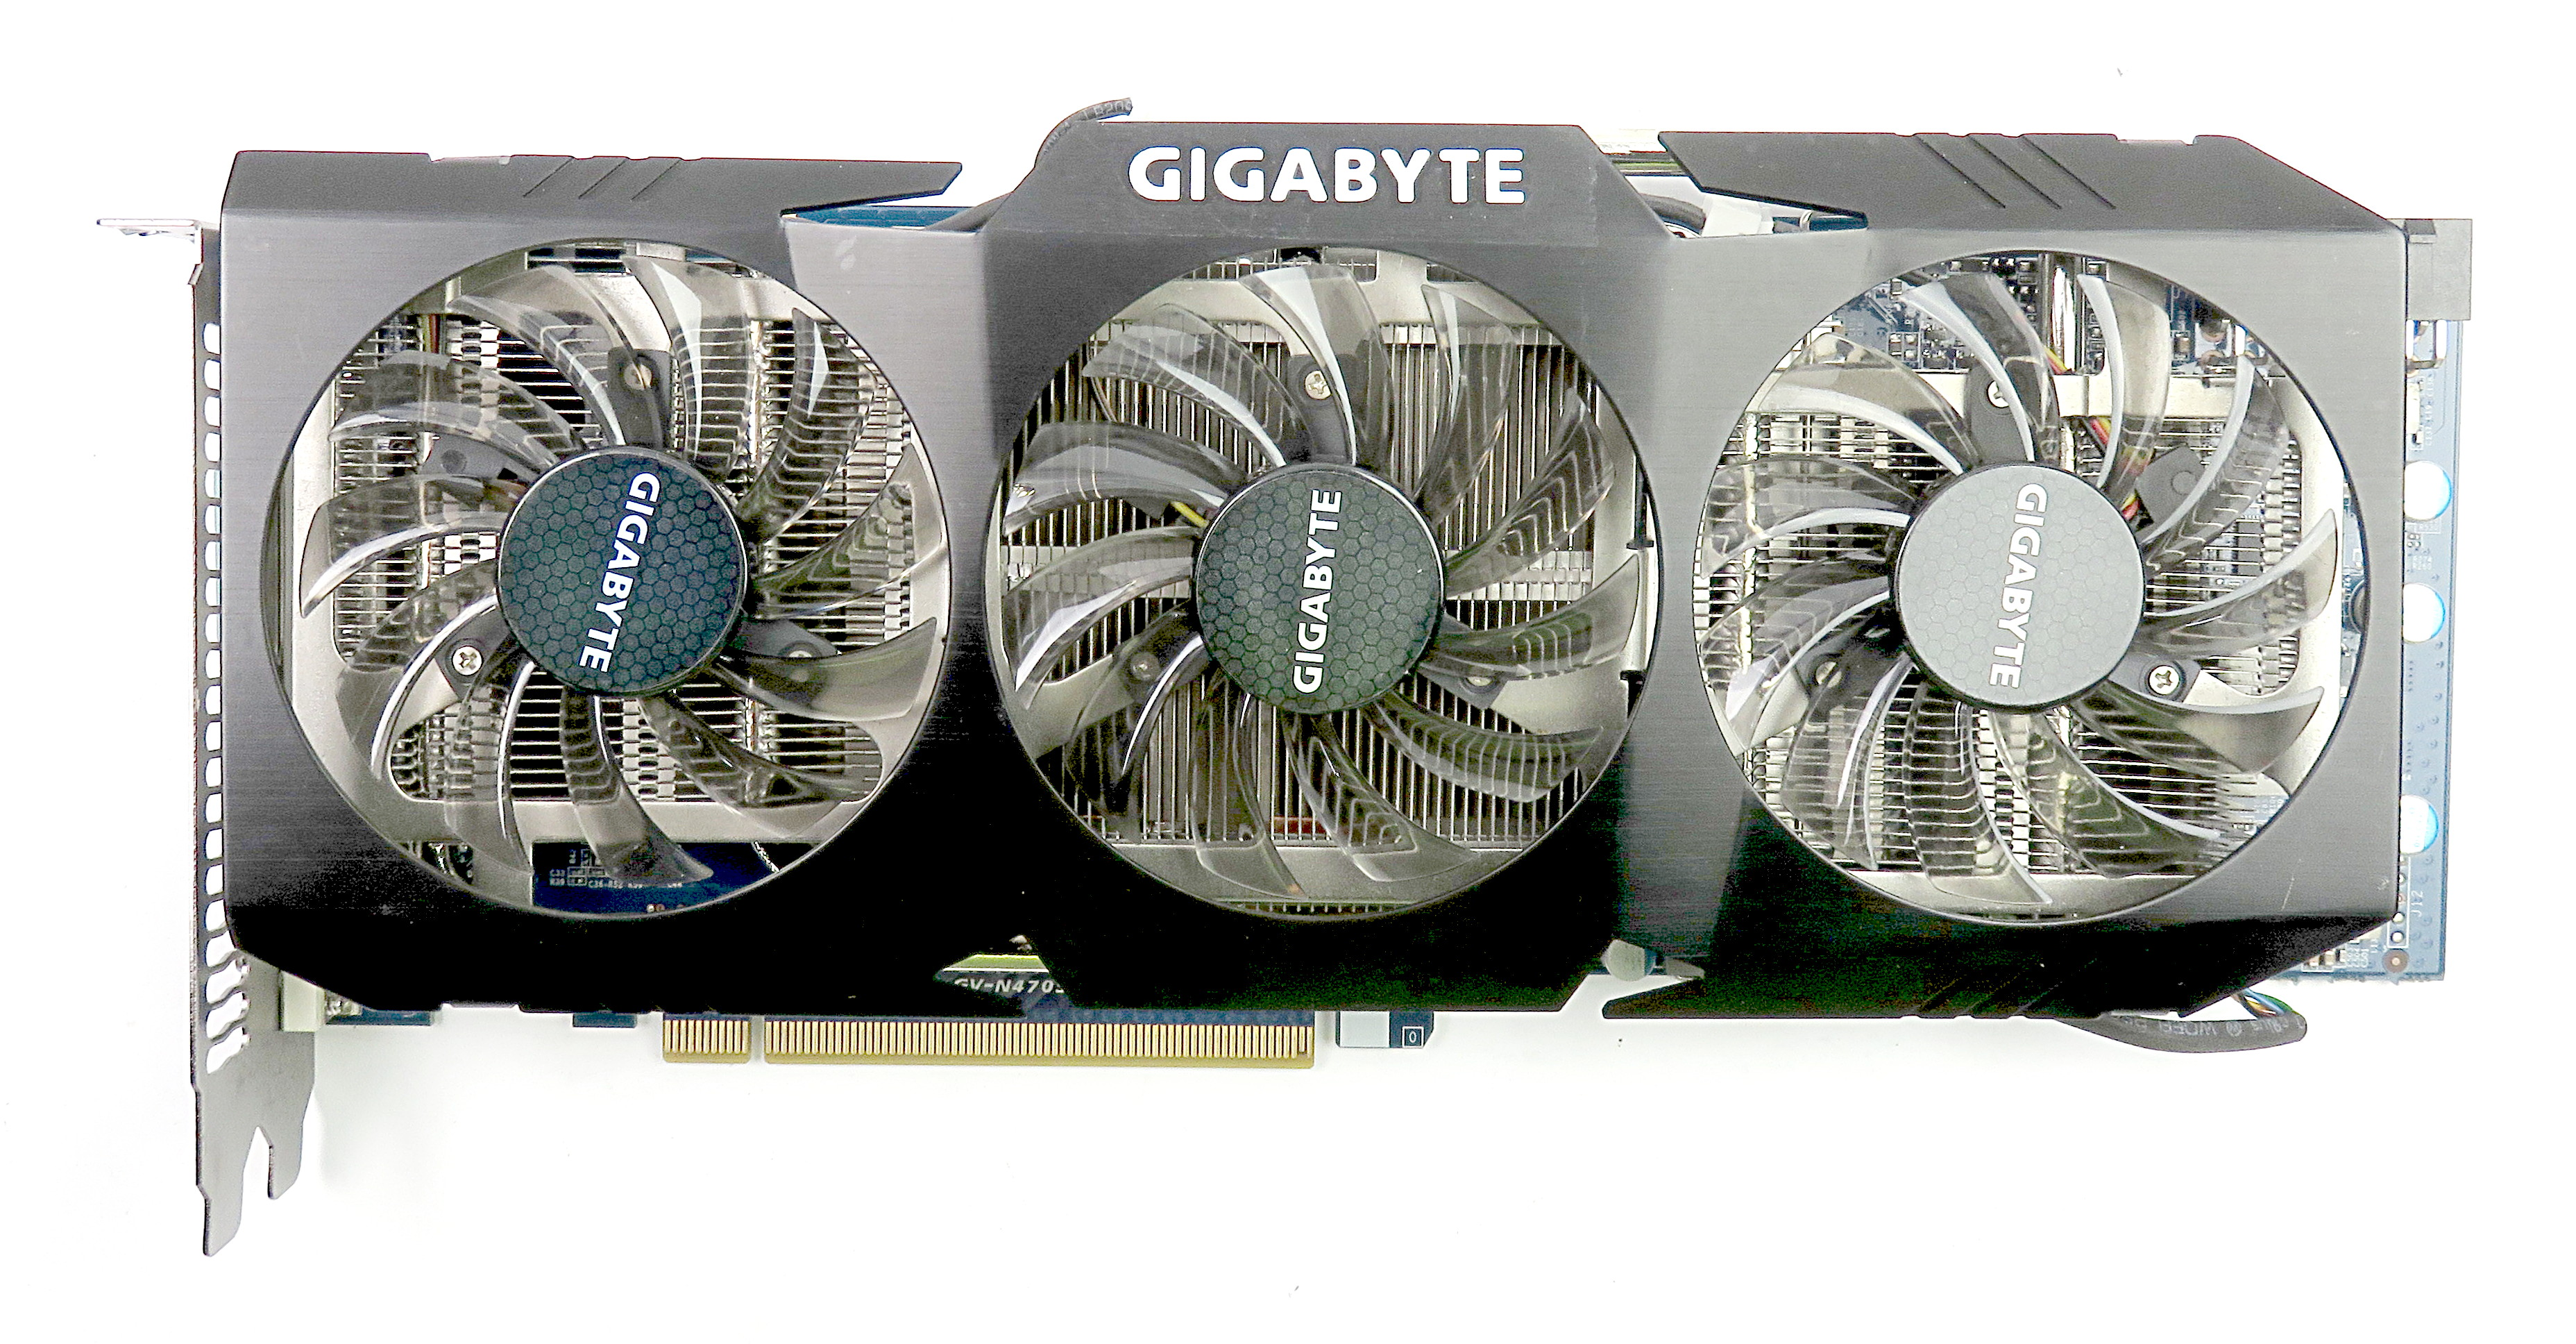 Gigabyte nVidia GTX 470 1280MB GDDR5 Graphics Card GV-N470SO-13I mHDMI/2xDVI